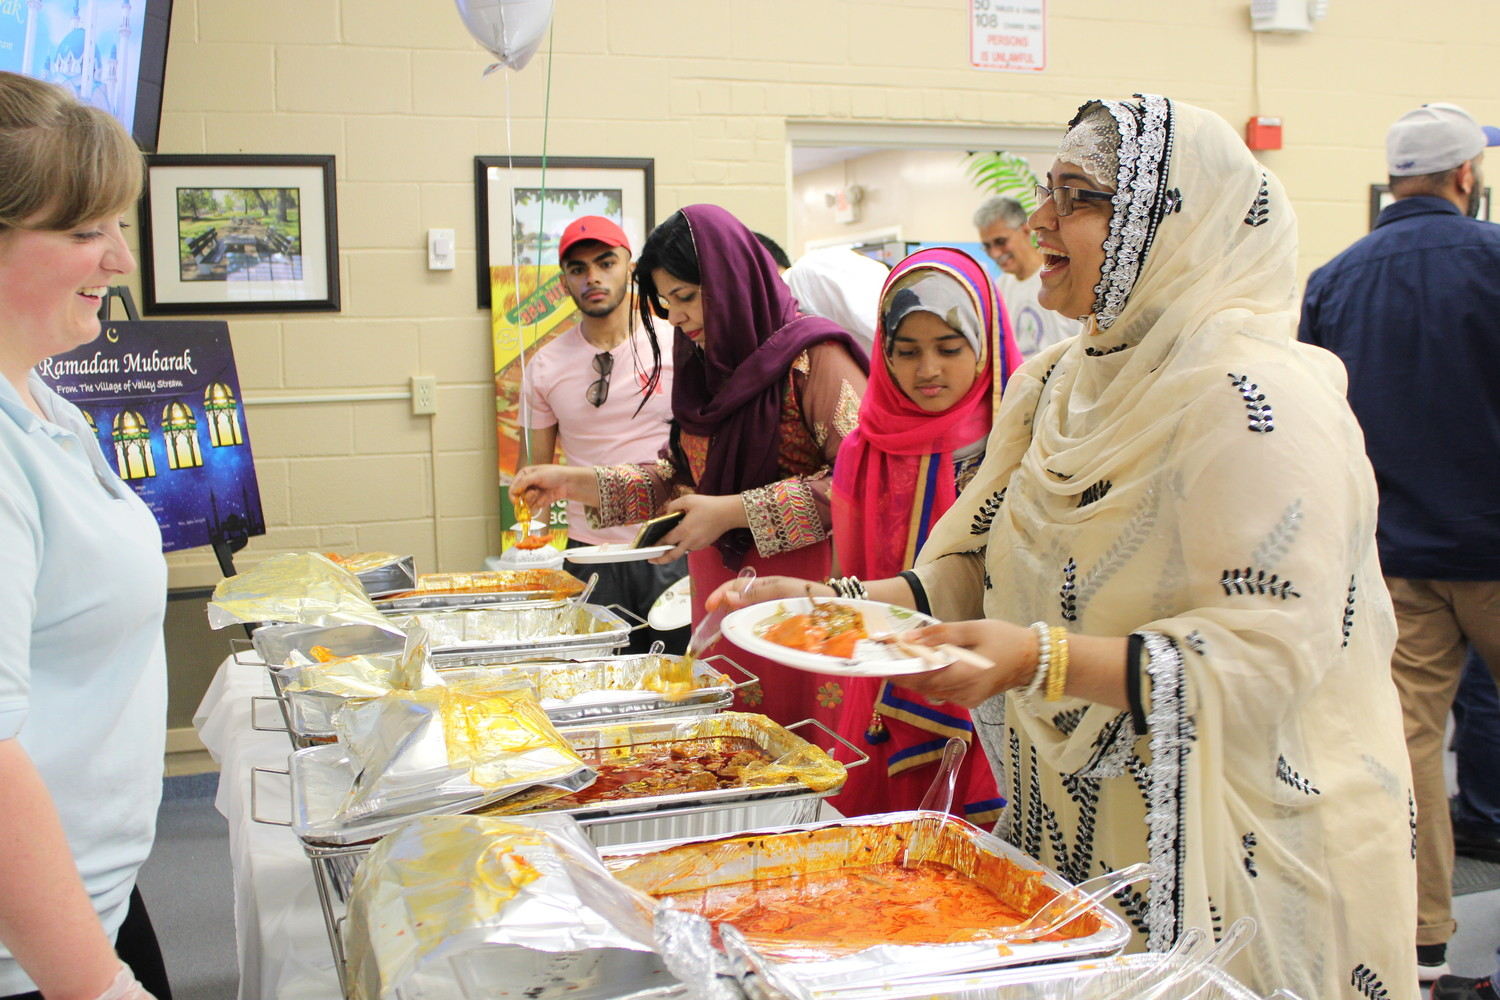 More than 500 Muslims gathered at the community center on June 16 for an Eid celebration.